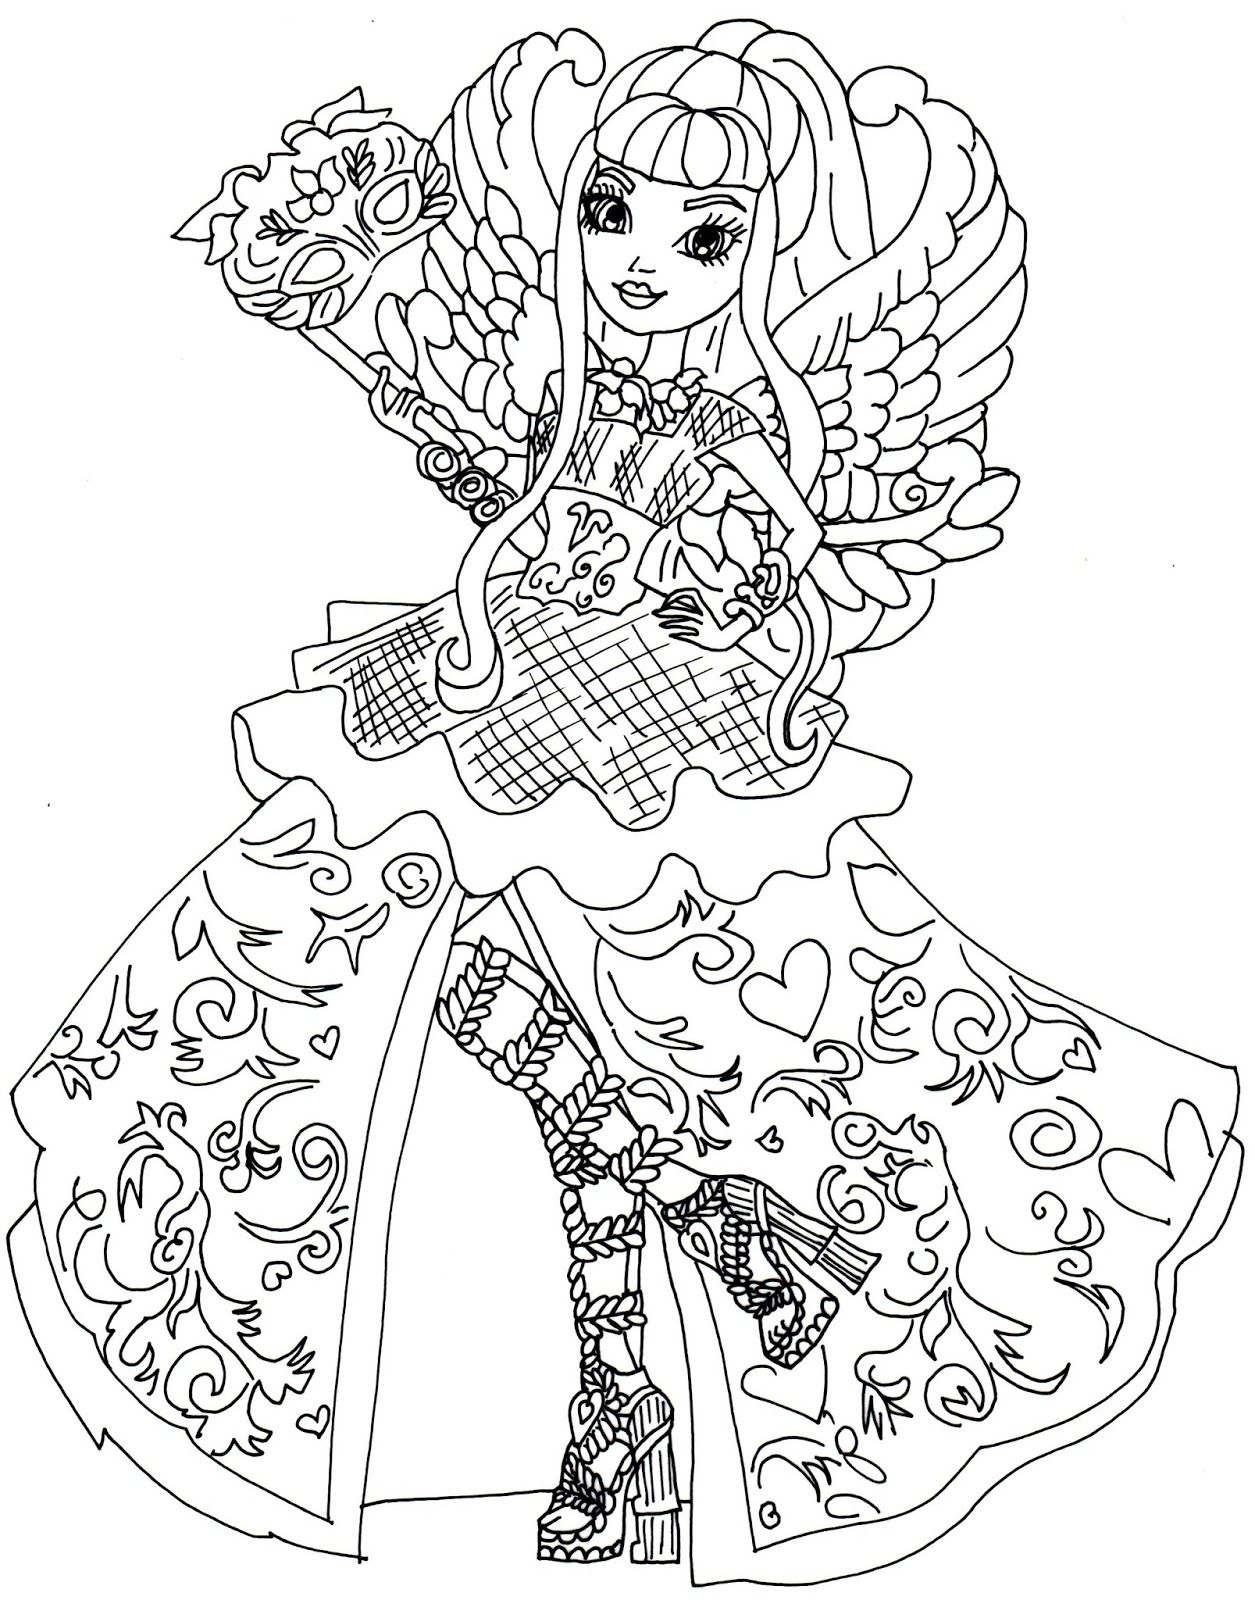 Ever after high coloring pictures - Ever After High Coloring Pages To Download And Print For Free